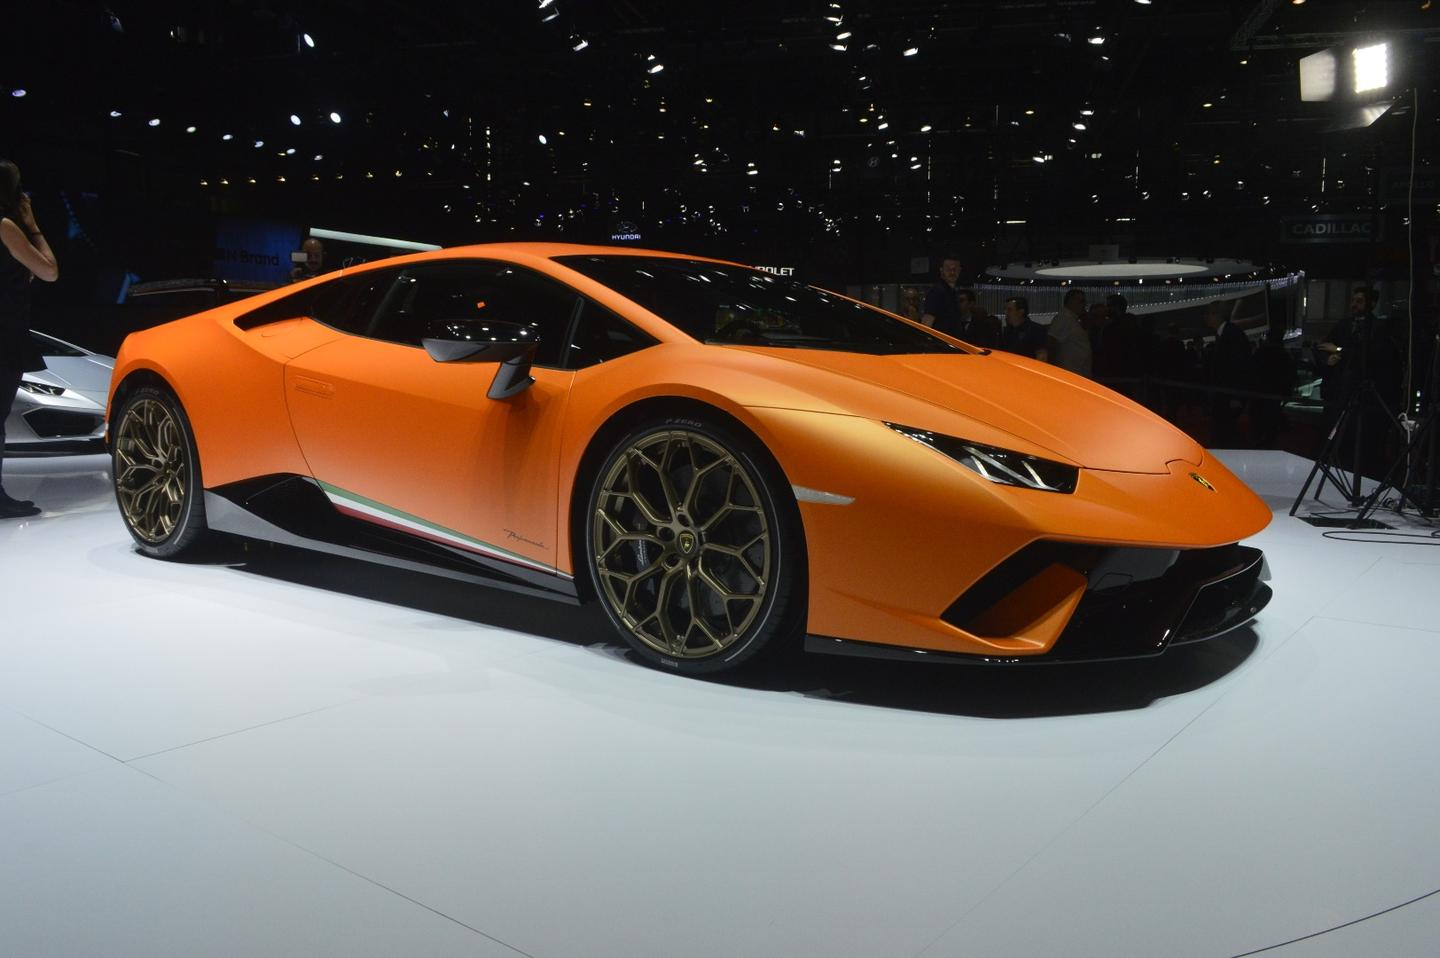 The Huracan Performante on show in Geneva